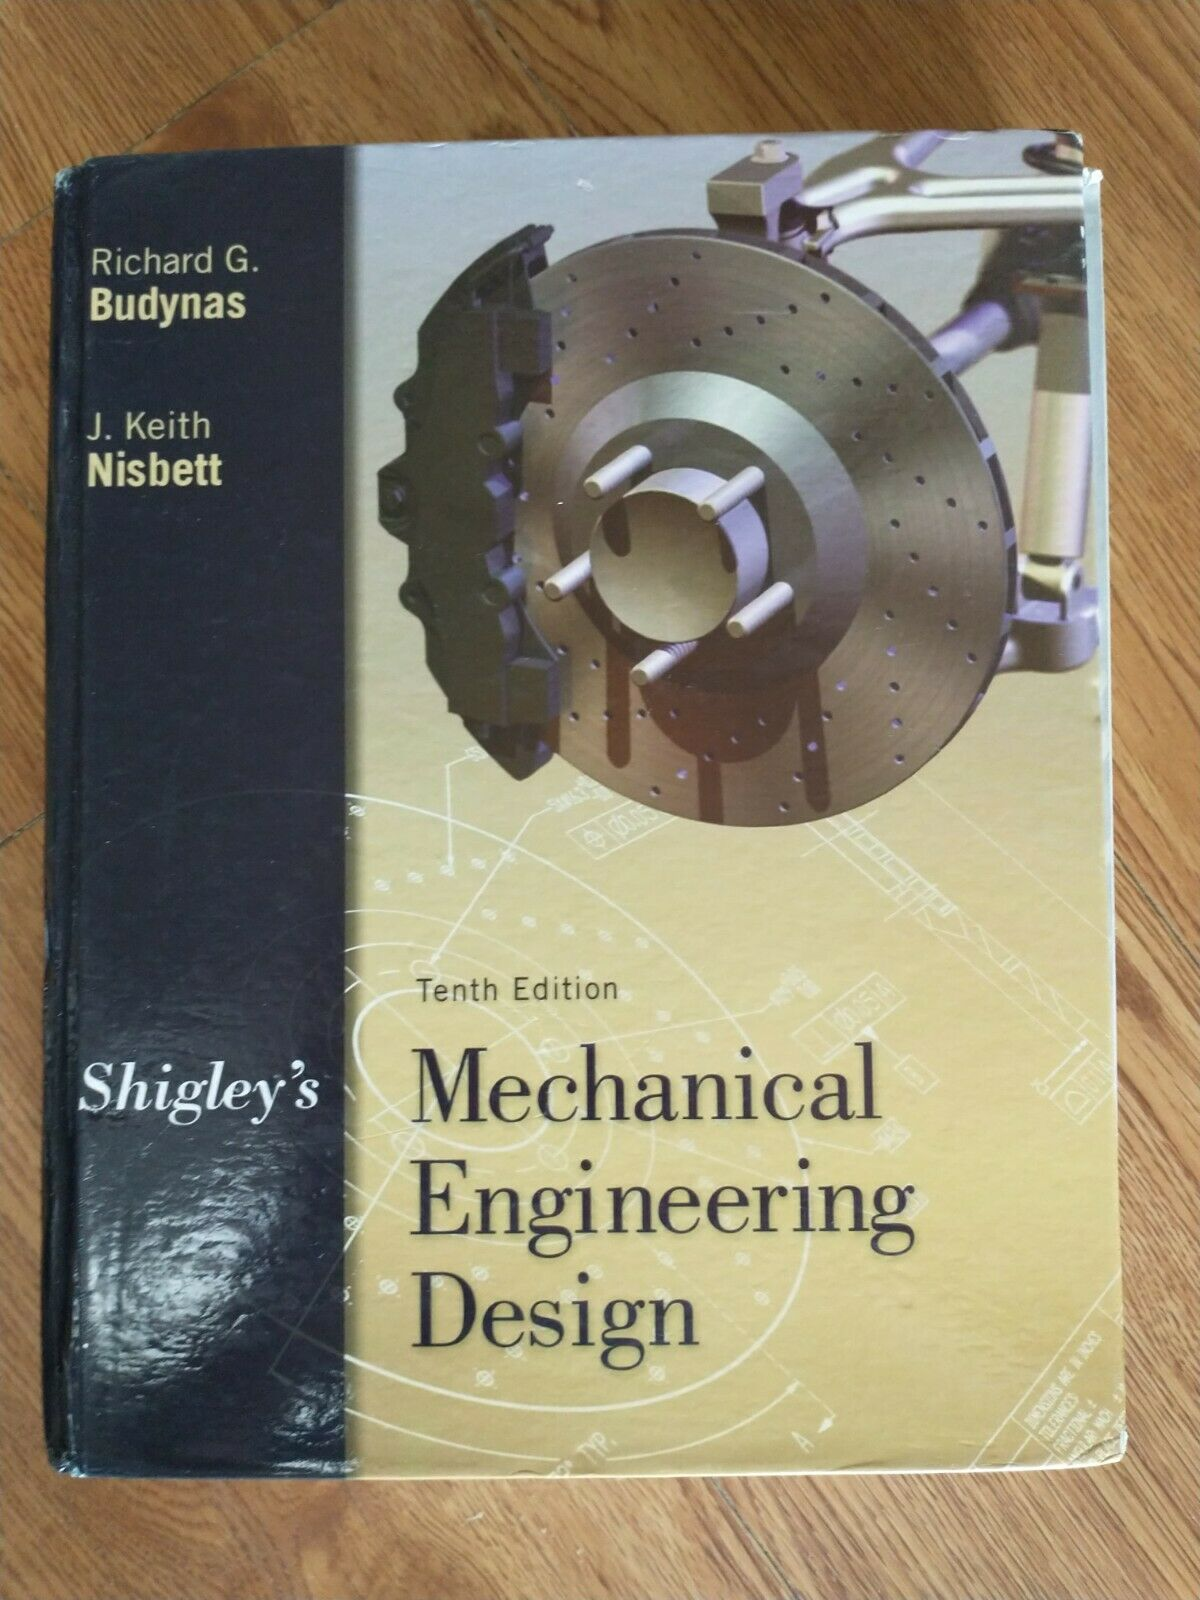 Shigley S Mechanical Engineering Design By Keith J Nisbett And Richard G Budynas 2014 Hardcover For Sale Online Ebay